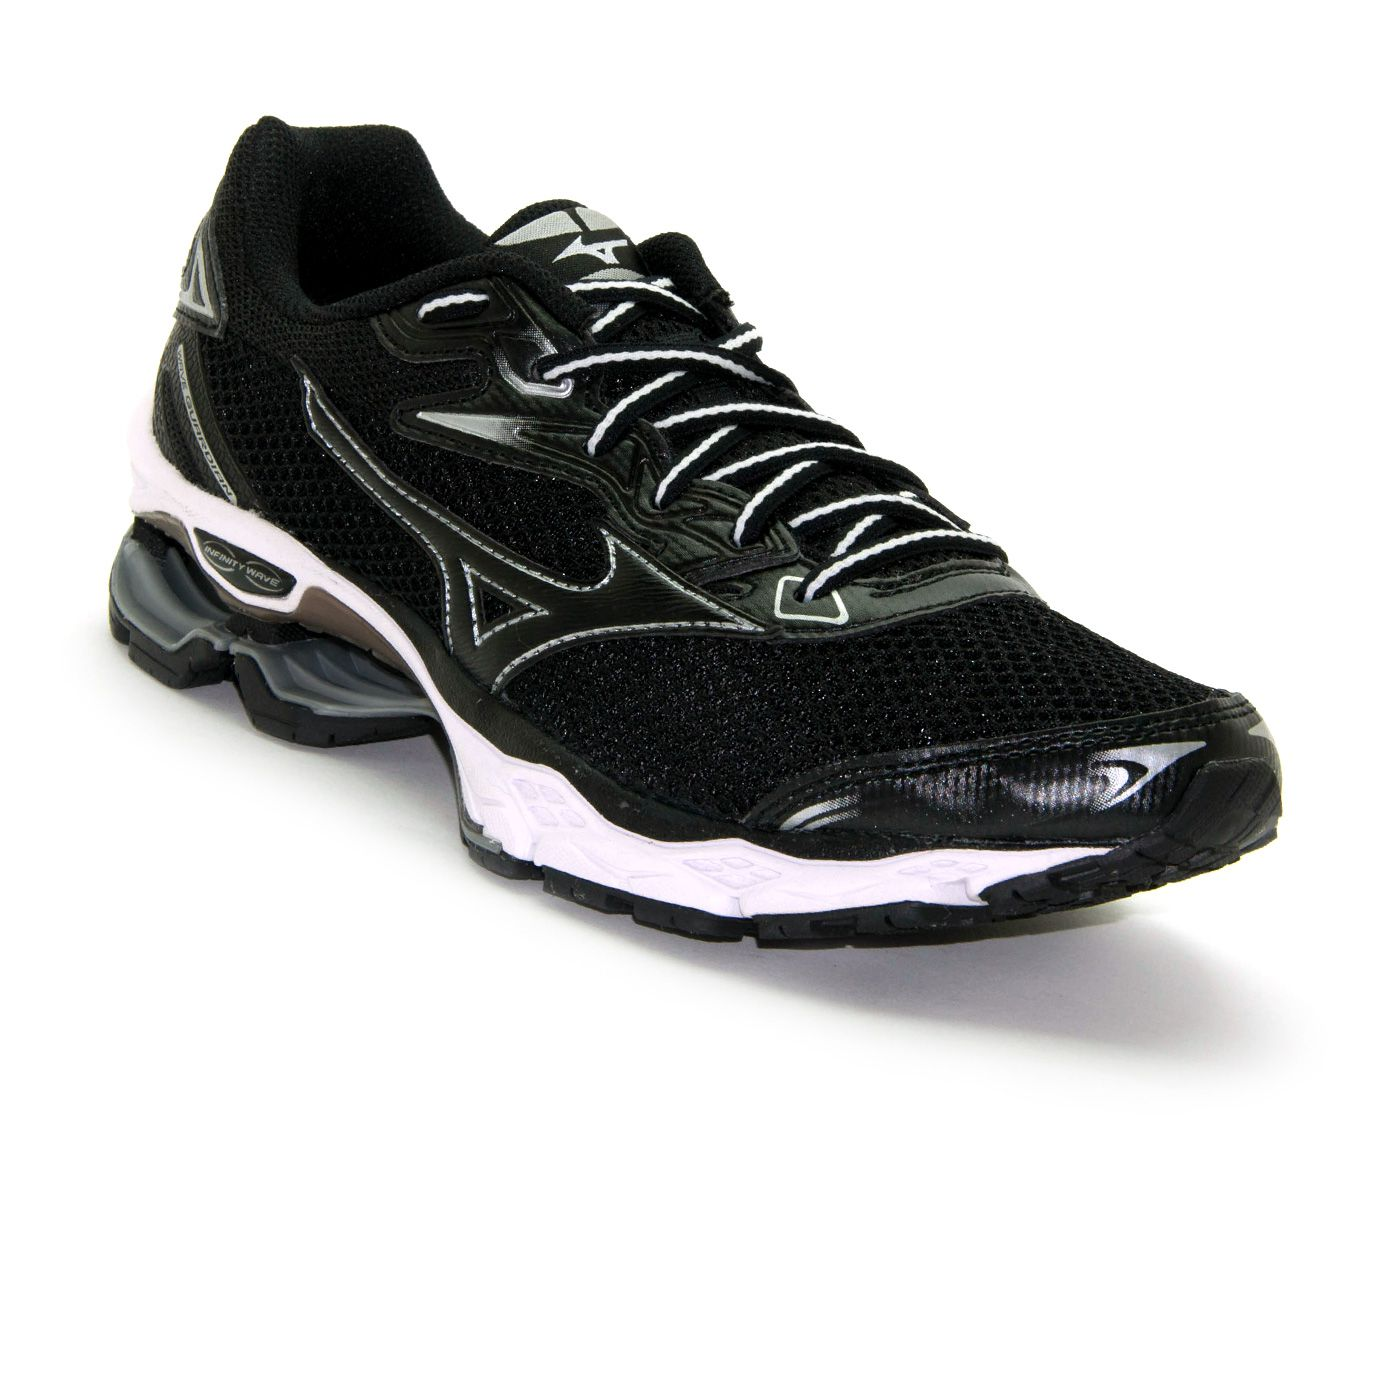 TENIS MIZUNO WAVE GUARDIAN S